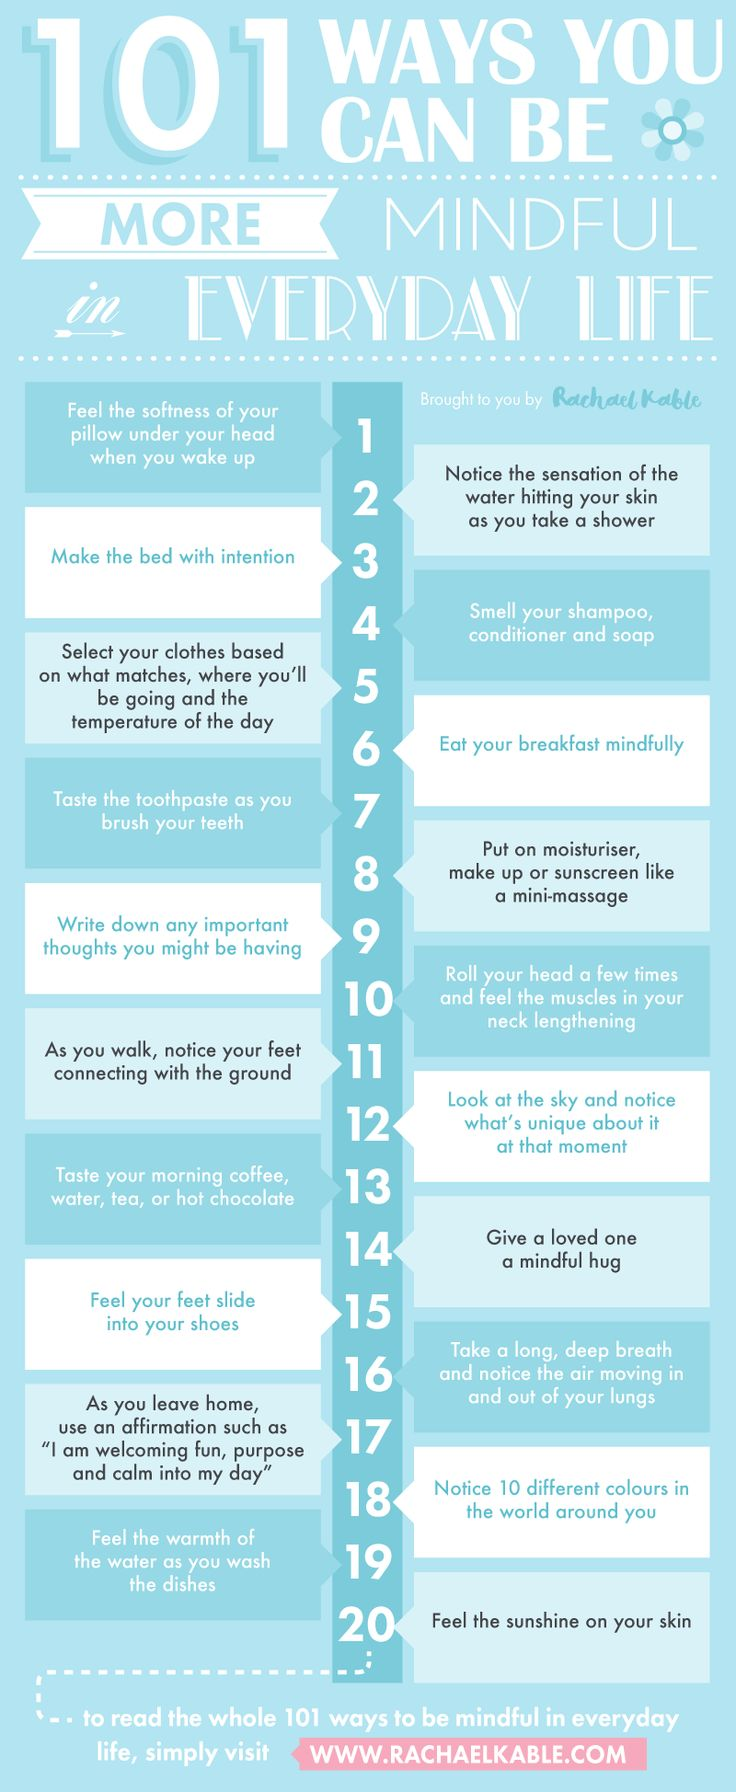 101 ways you can be more mindful in everyday life! THESE MINDFULNESS PRACTICES ARE EASY TO DO, QUICK, FUN AND MEANINGFUL AND YOU CAN IMPLEMENT AS MANY AS YOU LIKE INTO YOUR DAY. IF YOU'VE EVER WONDERED HOW YOU CAN BE MORE MINDFUL, THIS IS DEFINITELY THE POST FOR YOU!